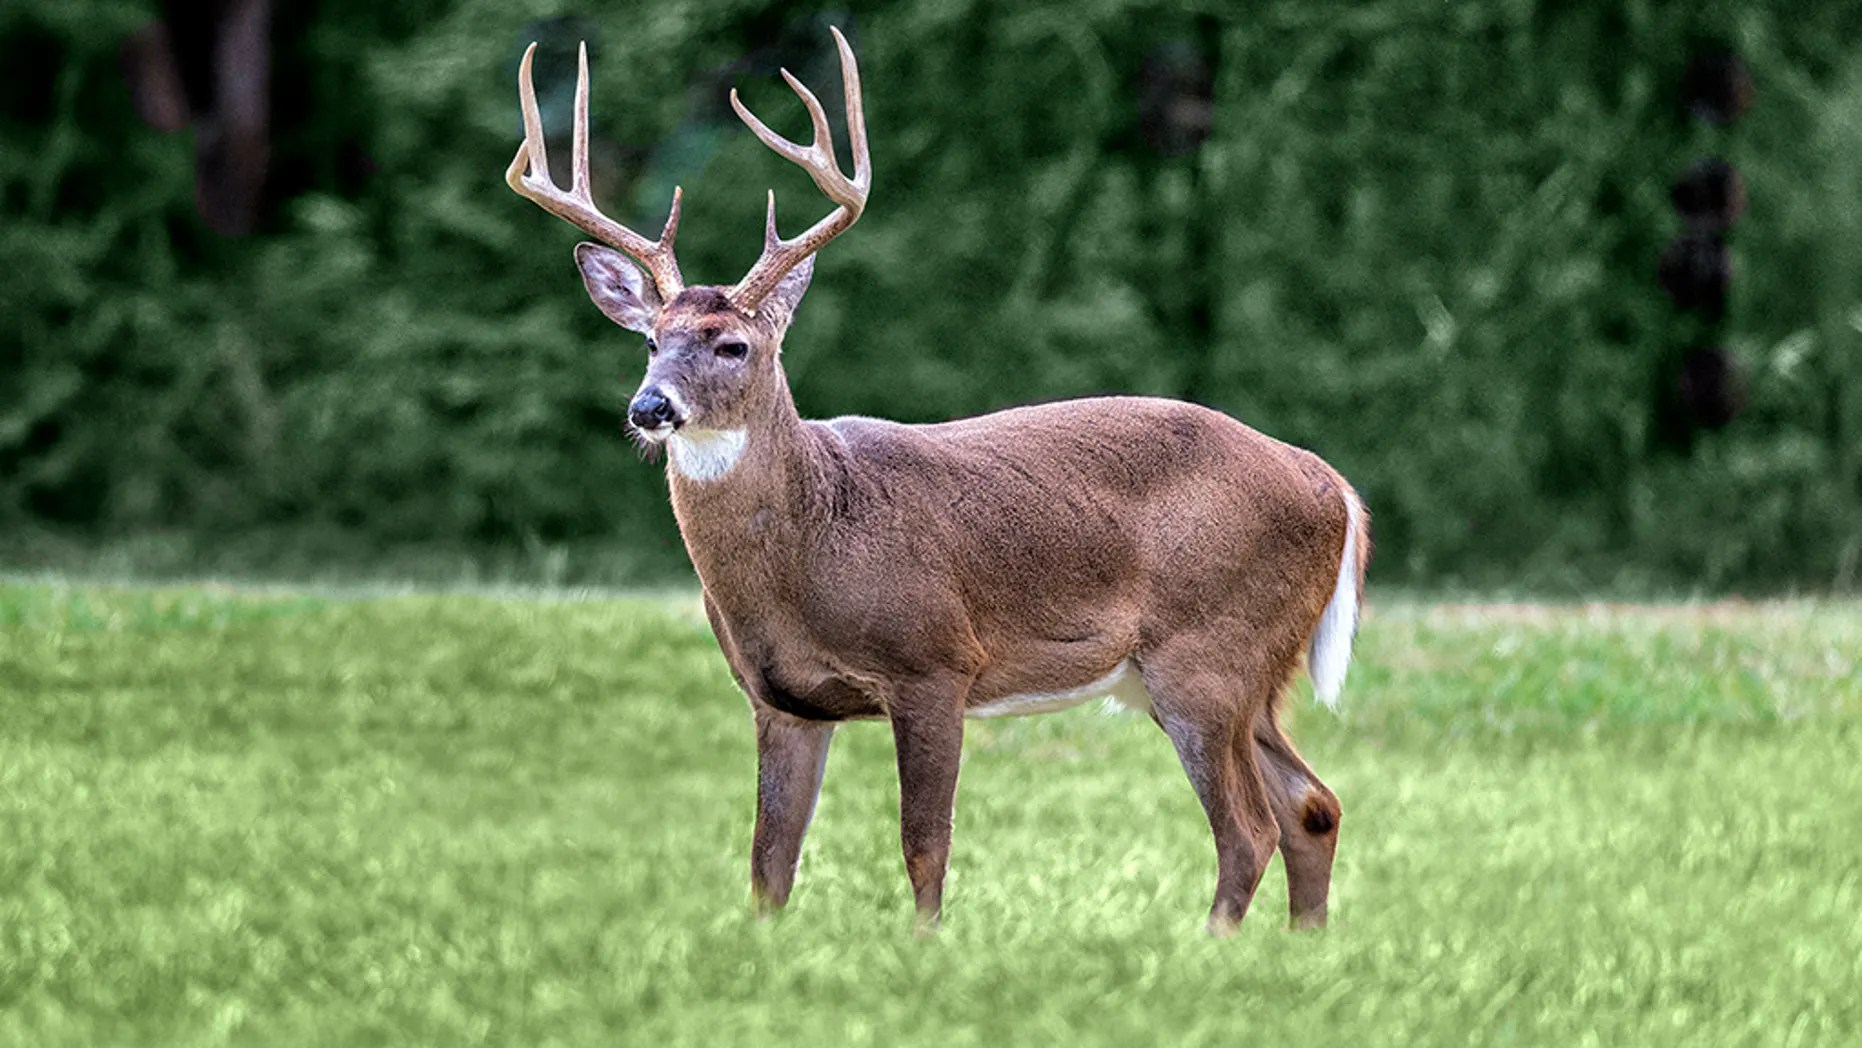 A white-tailed buck standing in a meadow in the Cades Cove section of the Great Smoky Mountains National Park.